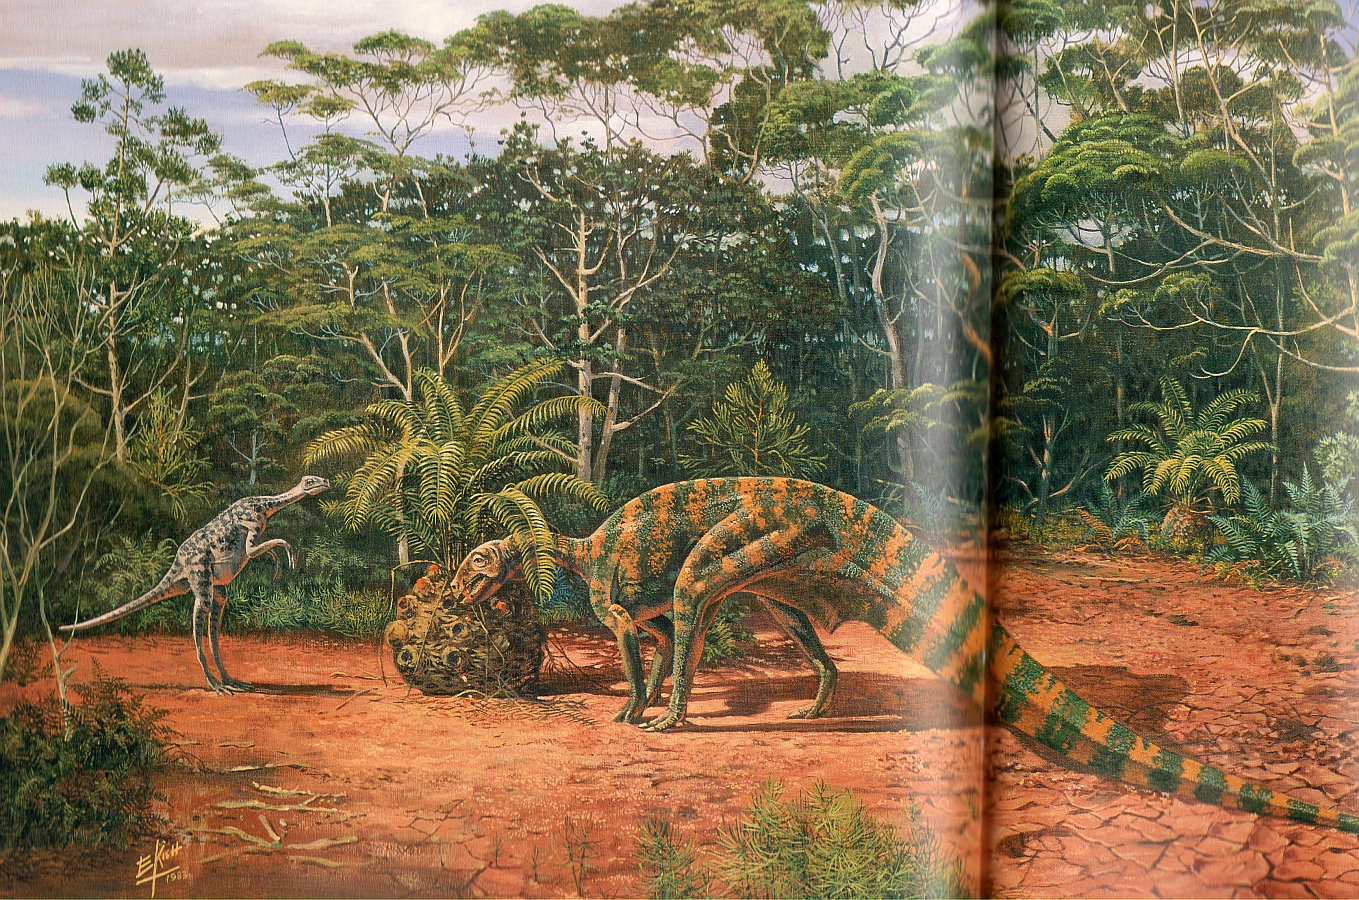 The Mokele Mbembe Is A Water Creature Said To Exist In The